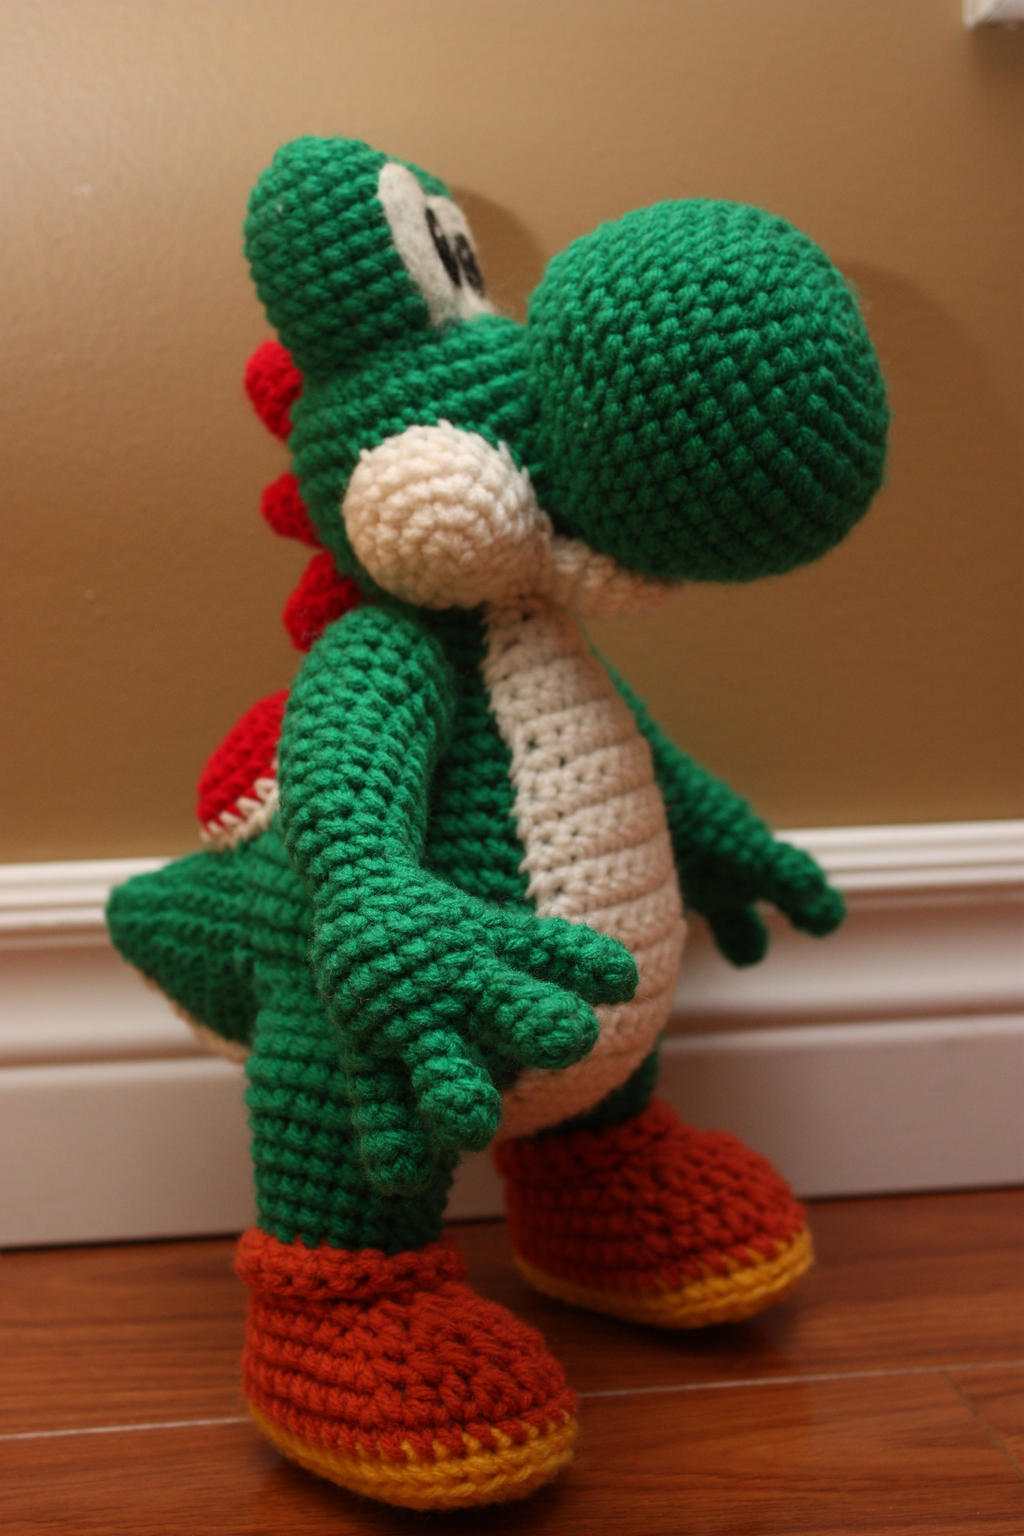 Crochet Patterns Yoshi : Crochet Yoshi by rdekroon on DeviantArt